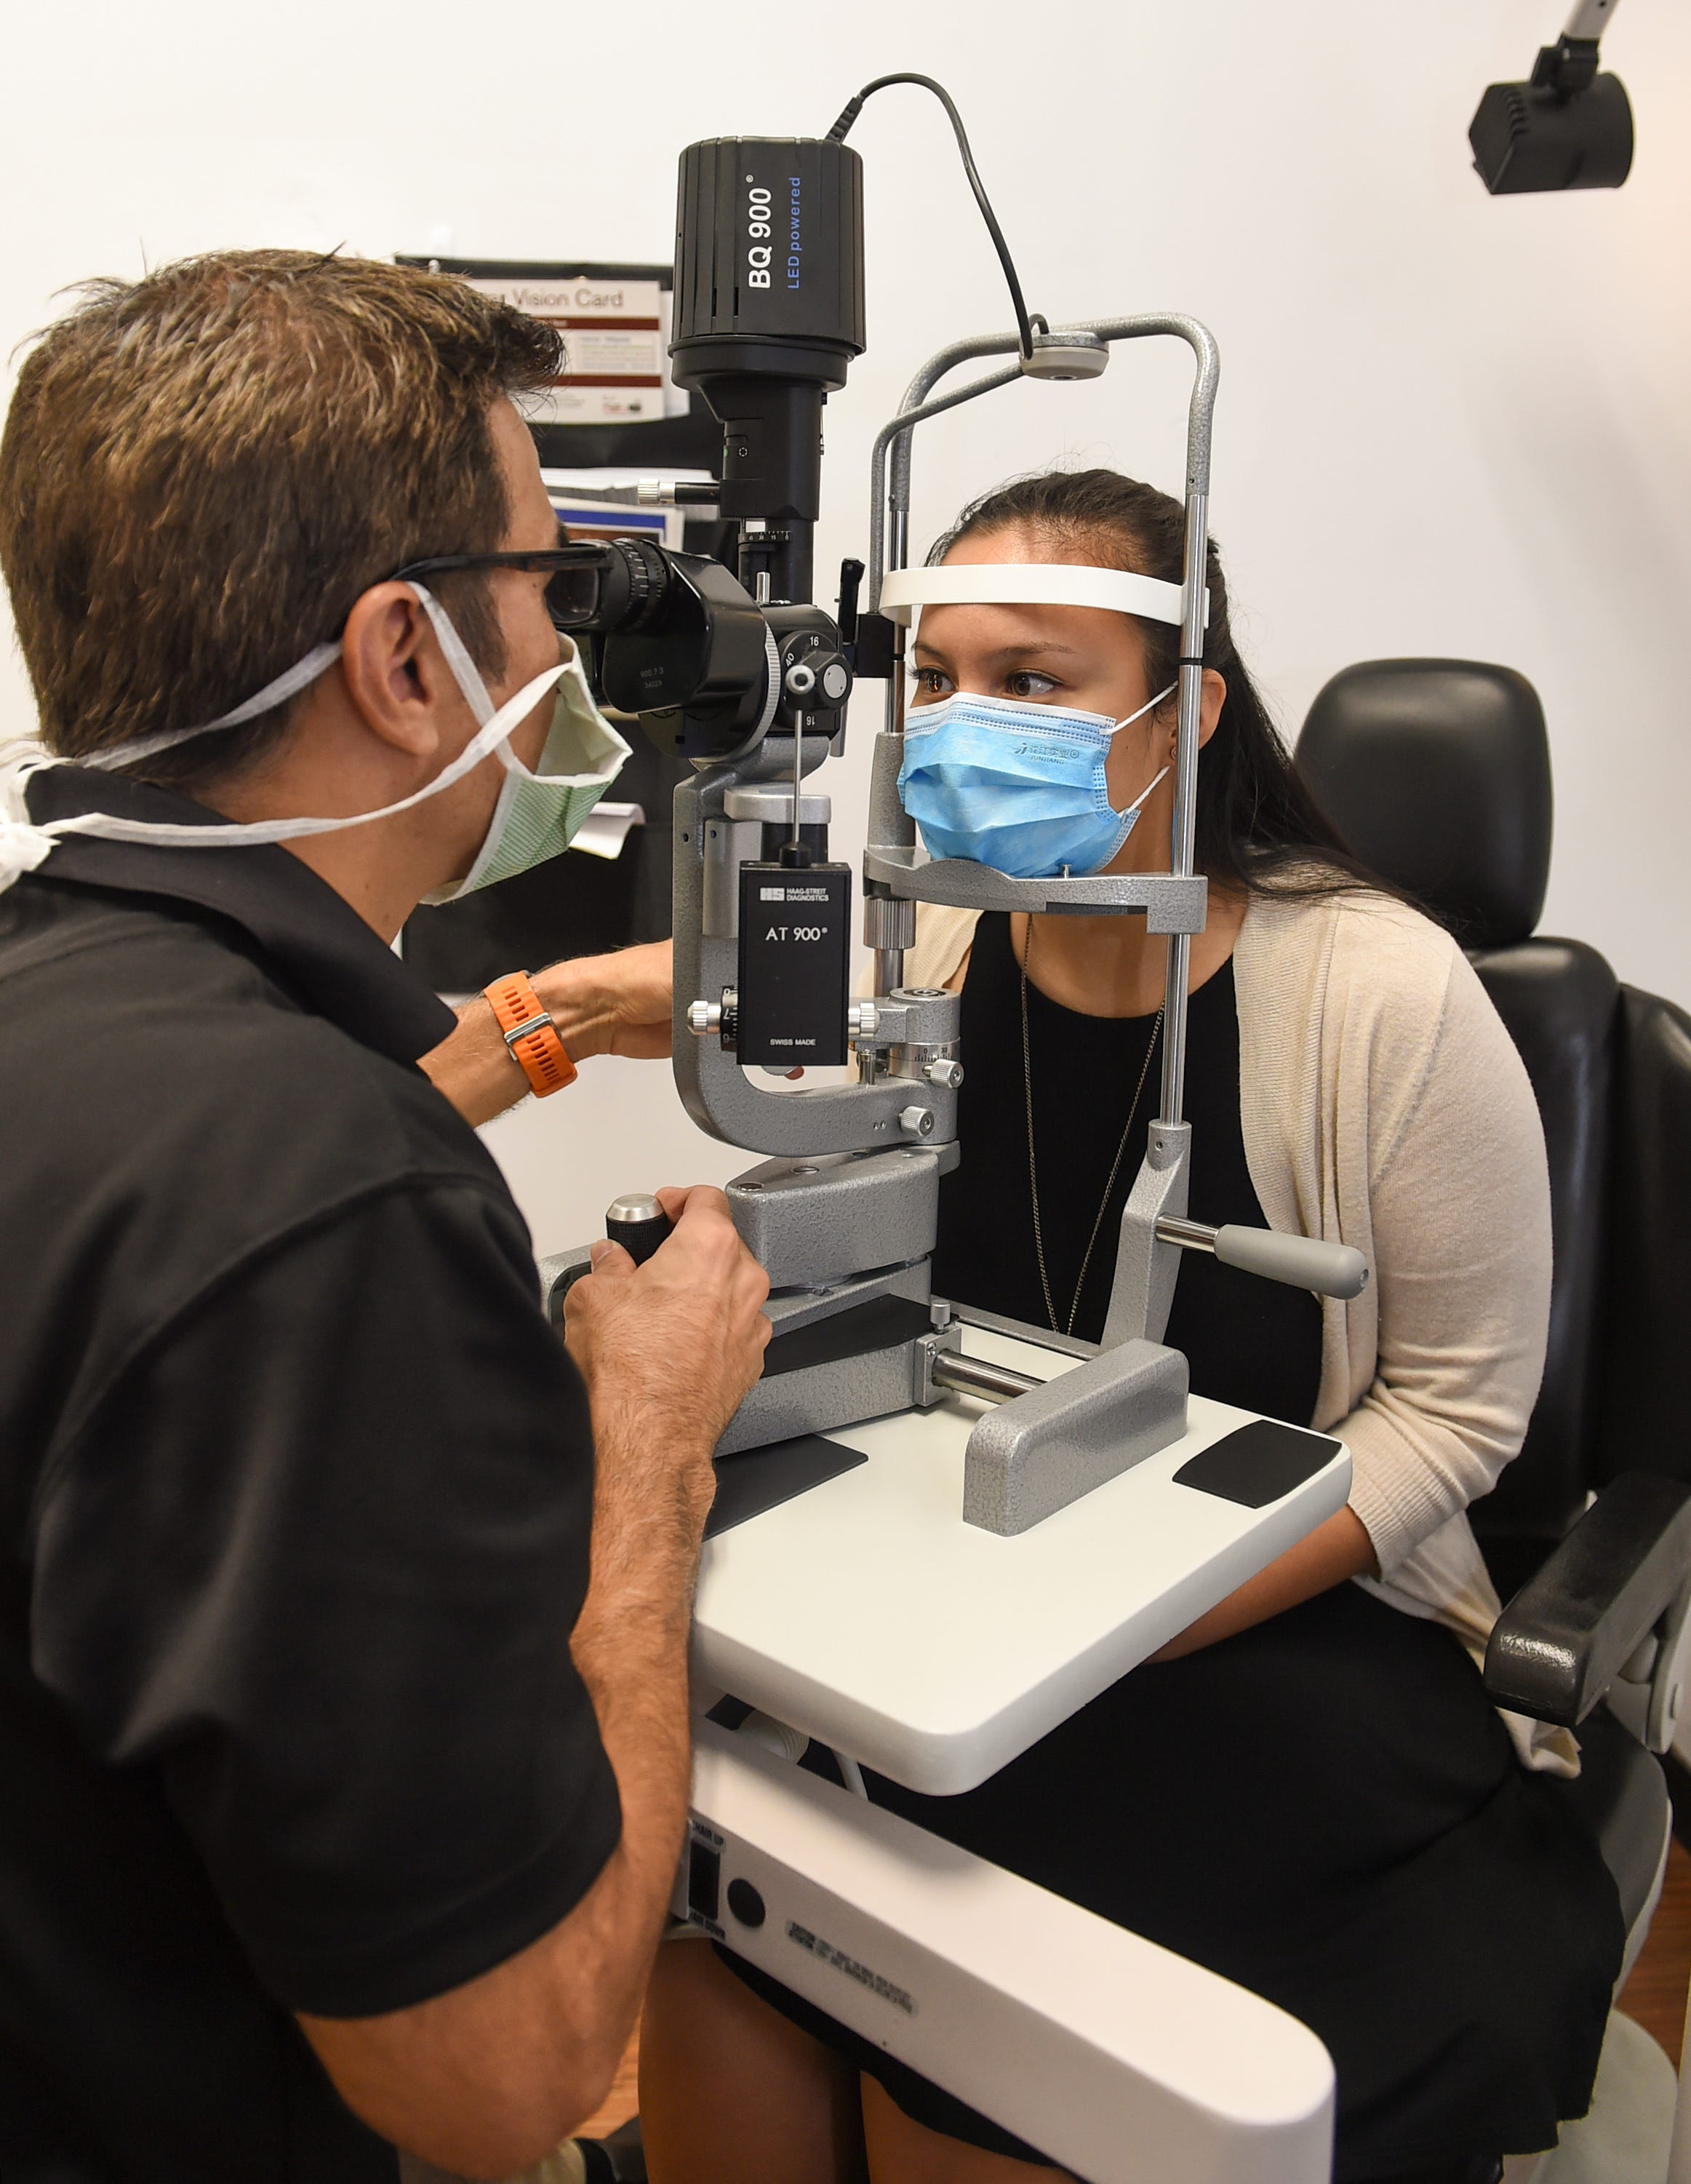 Dr. Peter Lombard performs a slit-lamp examination on Bryana Paulin at Lombard Health Eye Clinic and Optical Gallery in Sinajana, Oct. 16, 2020.